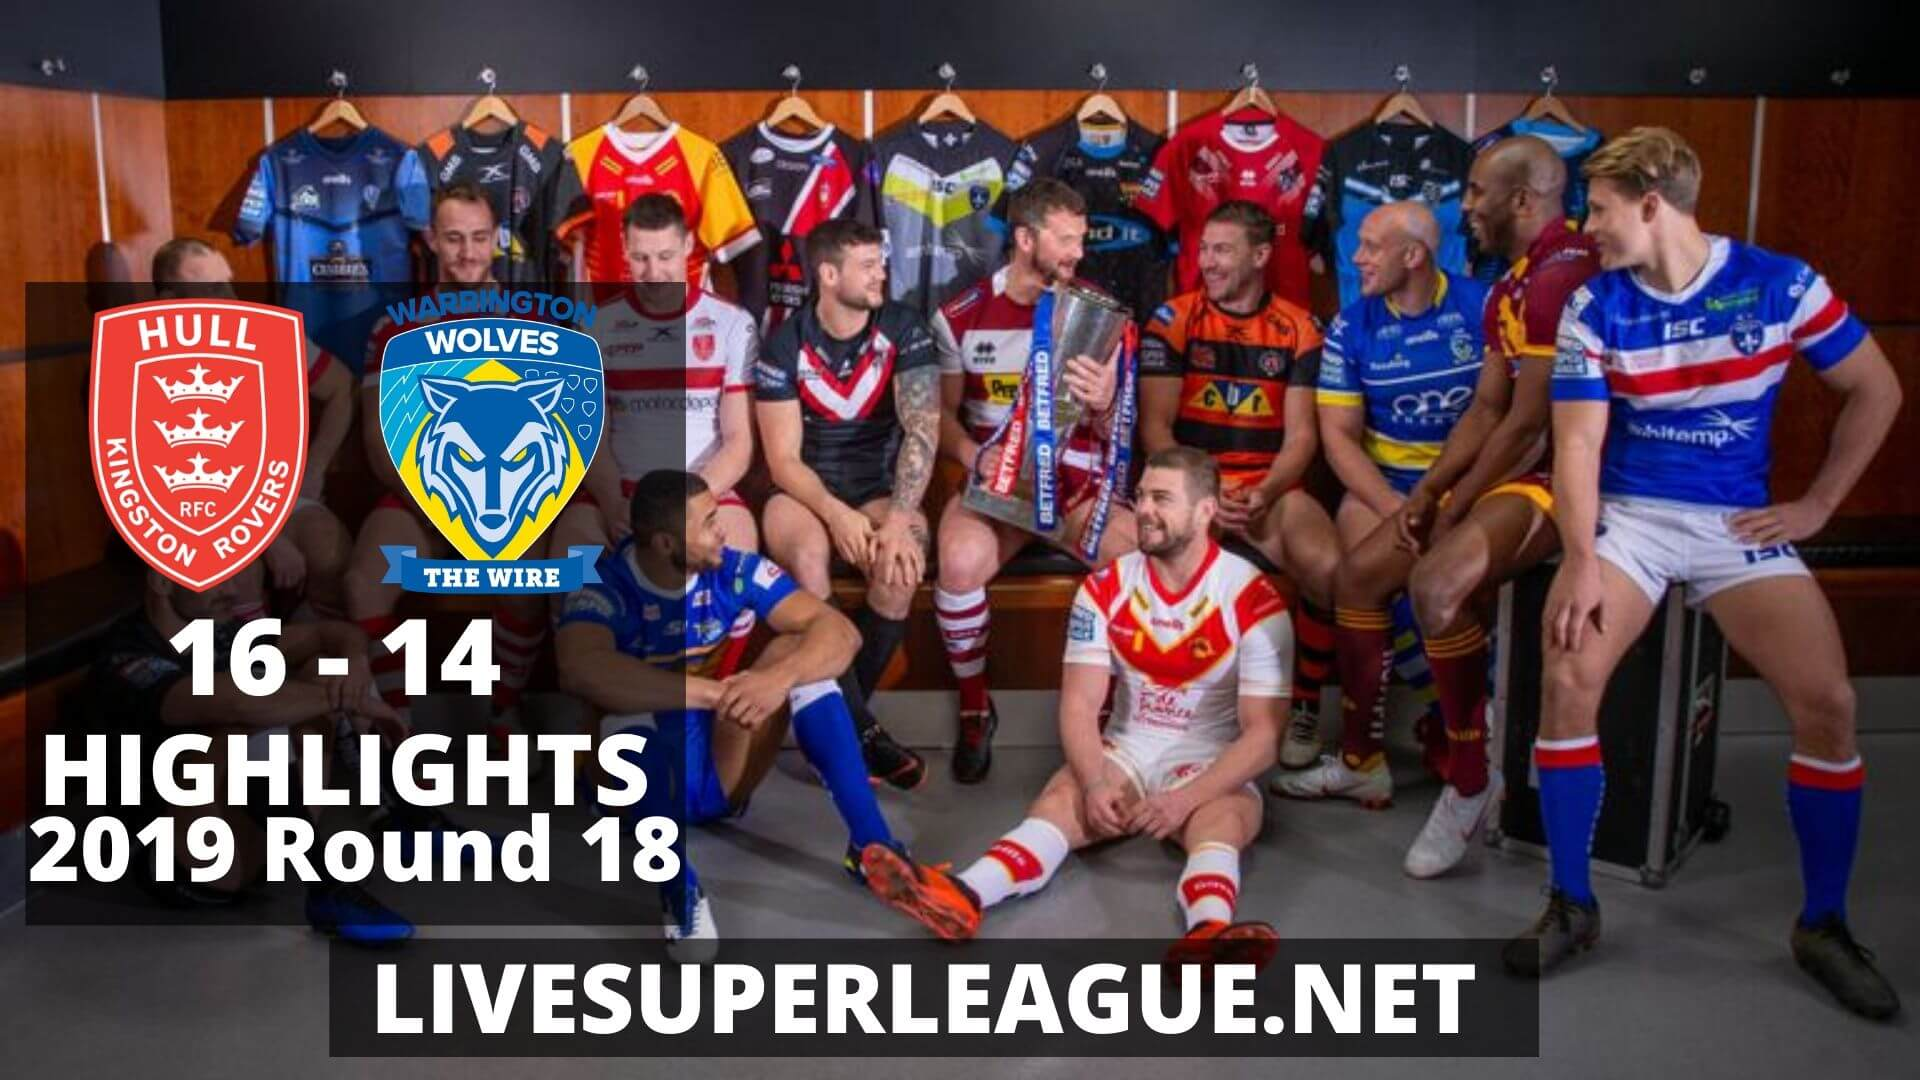 Hull Kingston Rovers Vs Warrington Wolves Highlights 2019 Round 18